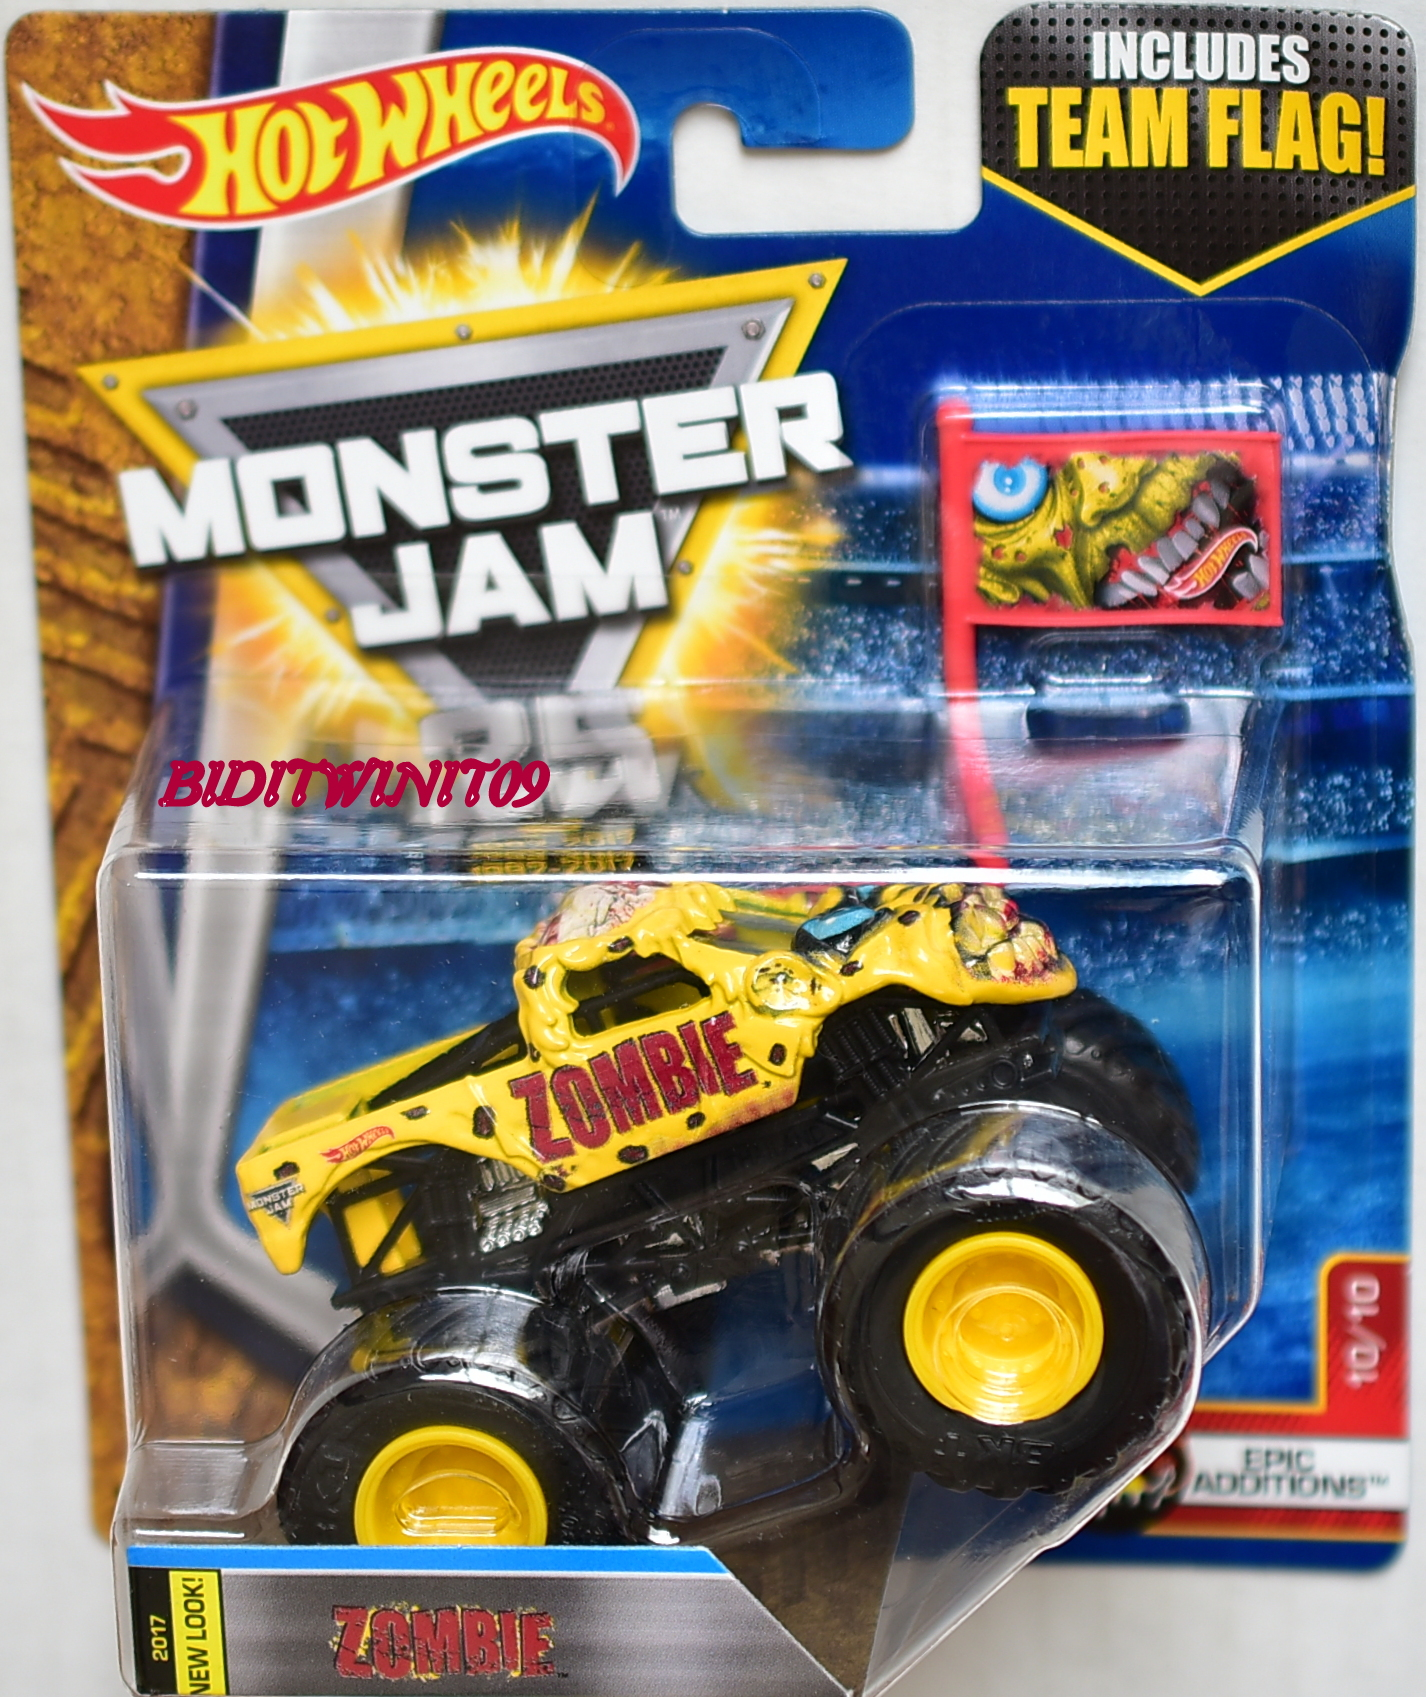 HOT WHEELS 2017 MONSTER JAM INCLUDES TEAM FLAG ZOMBIE - EPIC ADDITIONS